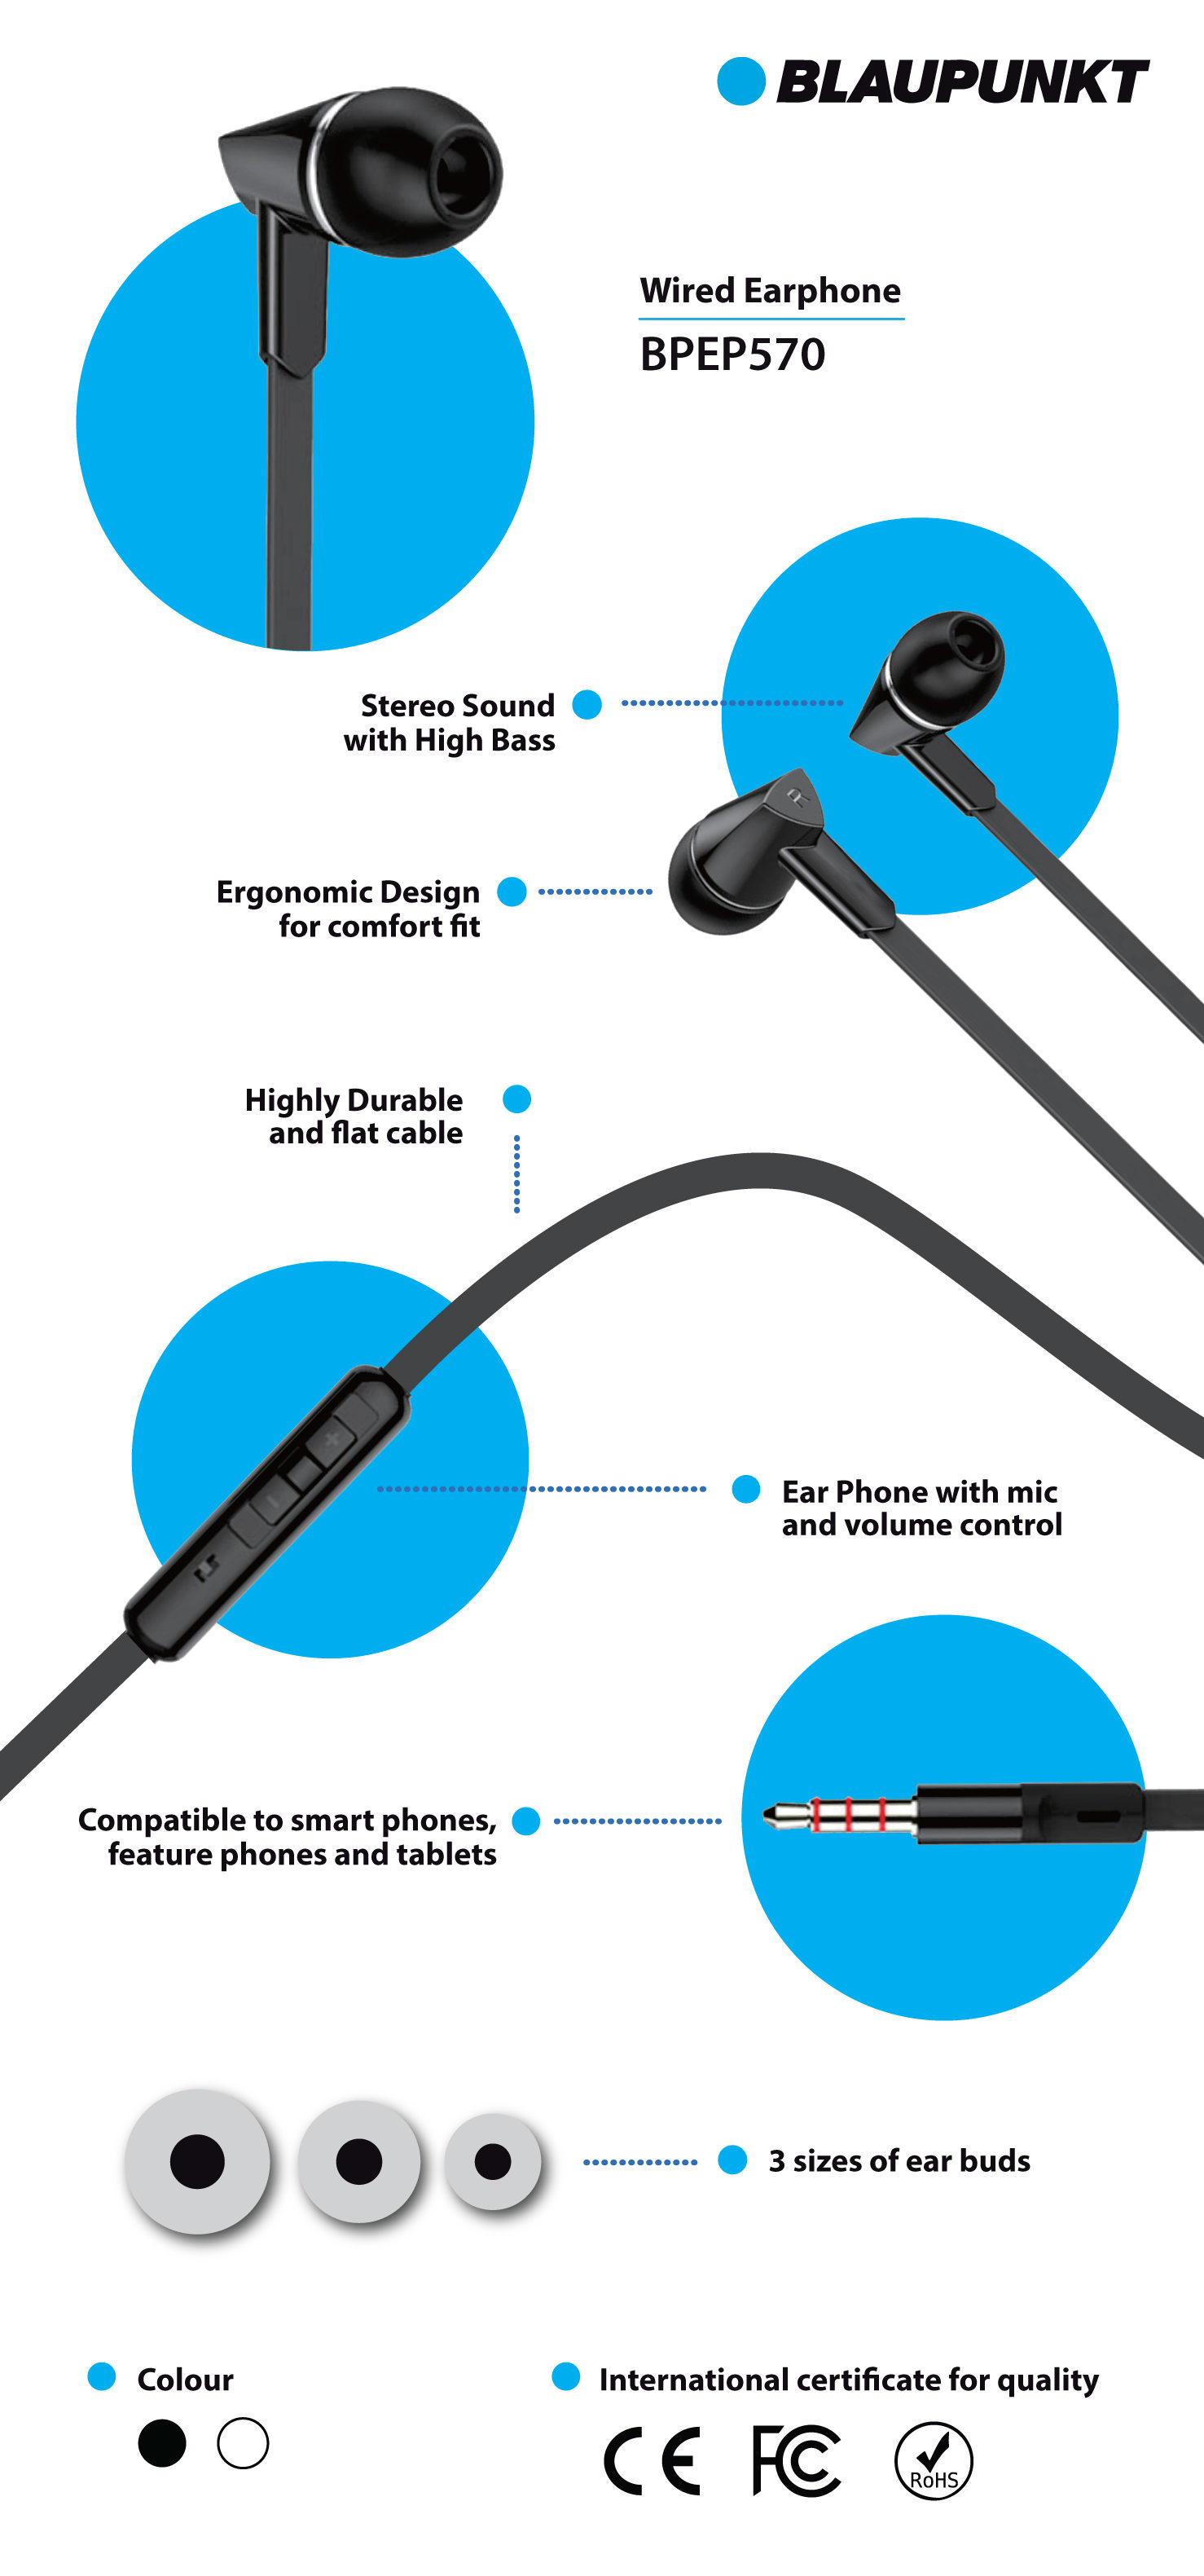 inr wiring diagram high efficiency stereo class d audio amplifier blaupunkt launches car chargers cables and earphones in some of these earphones also use duress resistant